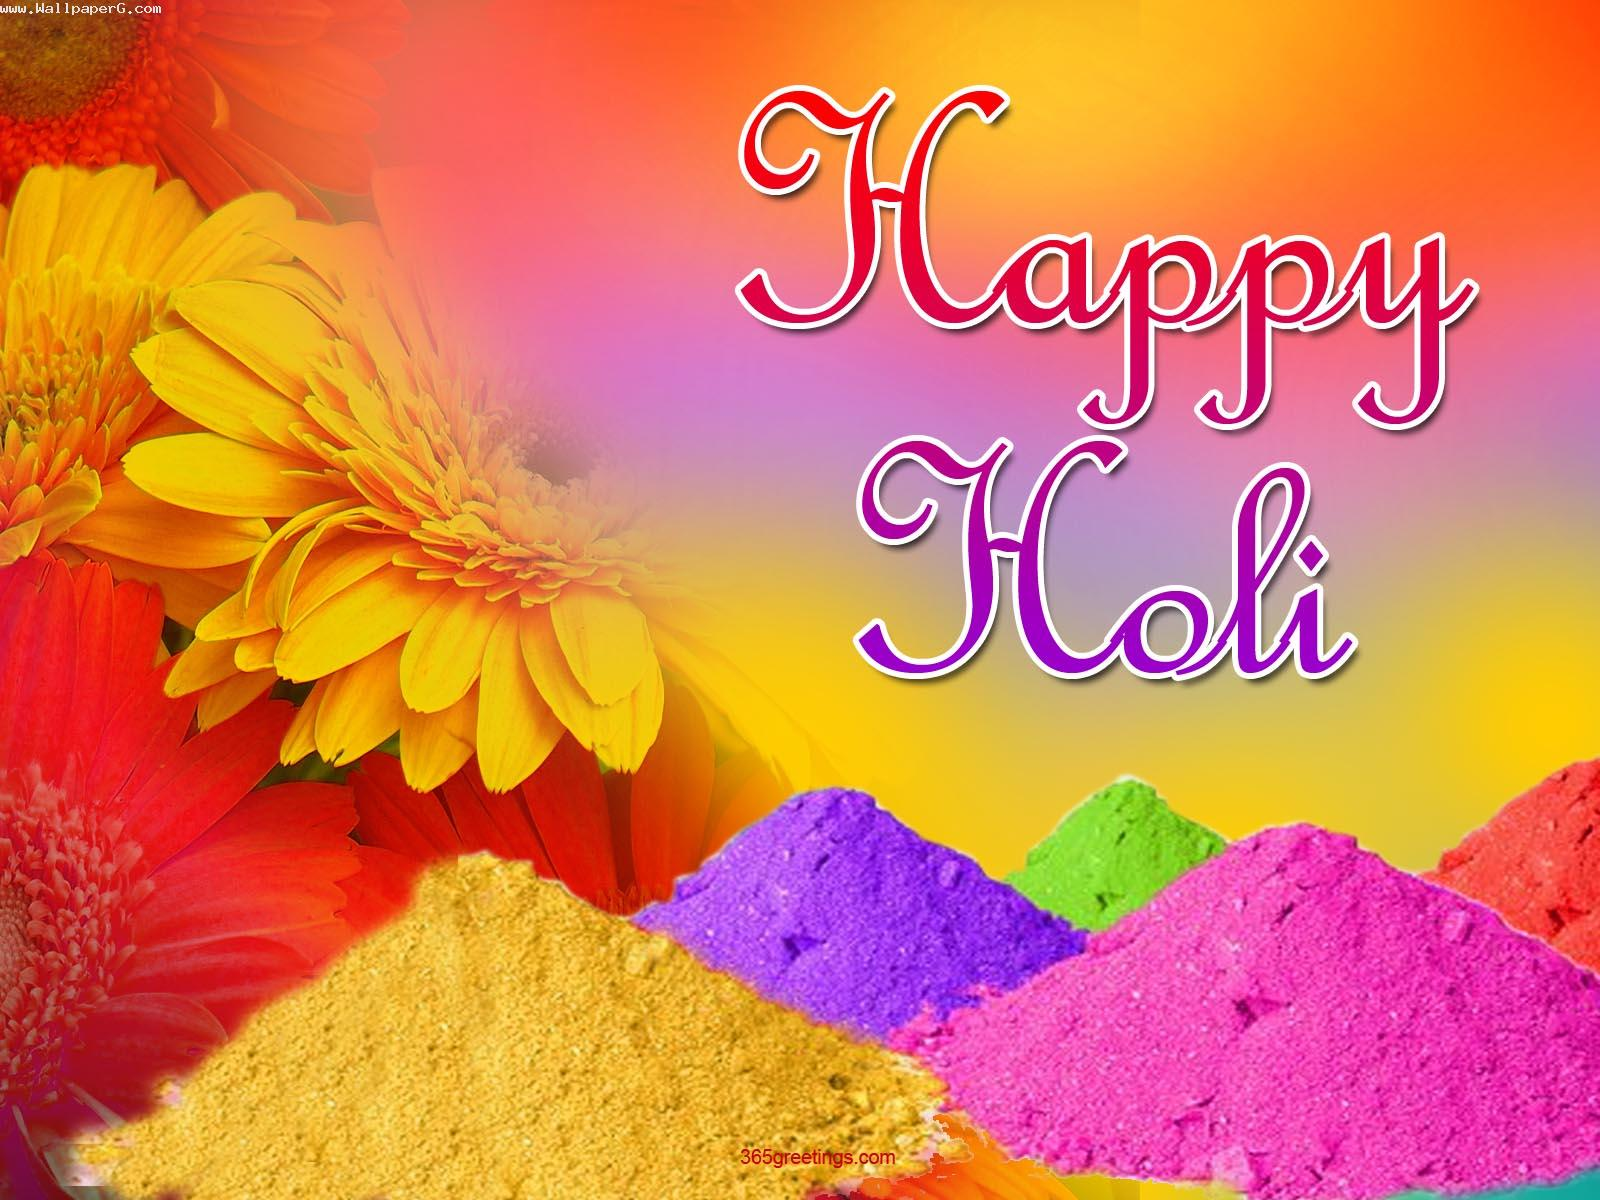 Rang bhari holi ,wide,wallpapers,images,pictute,photos